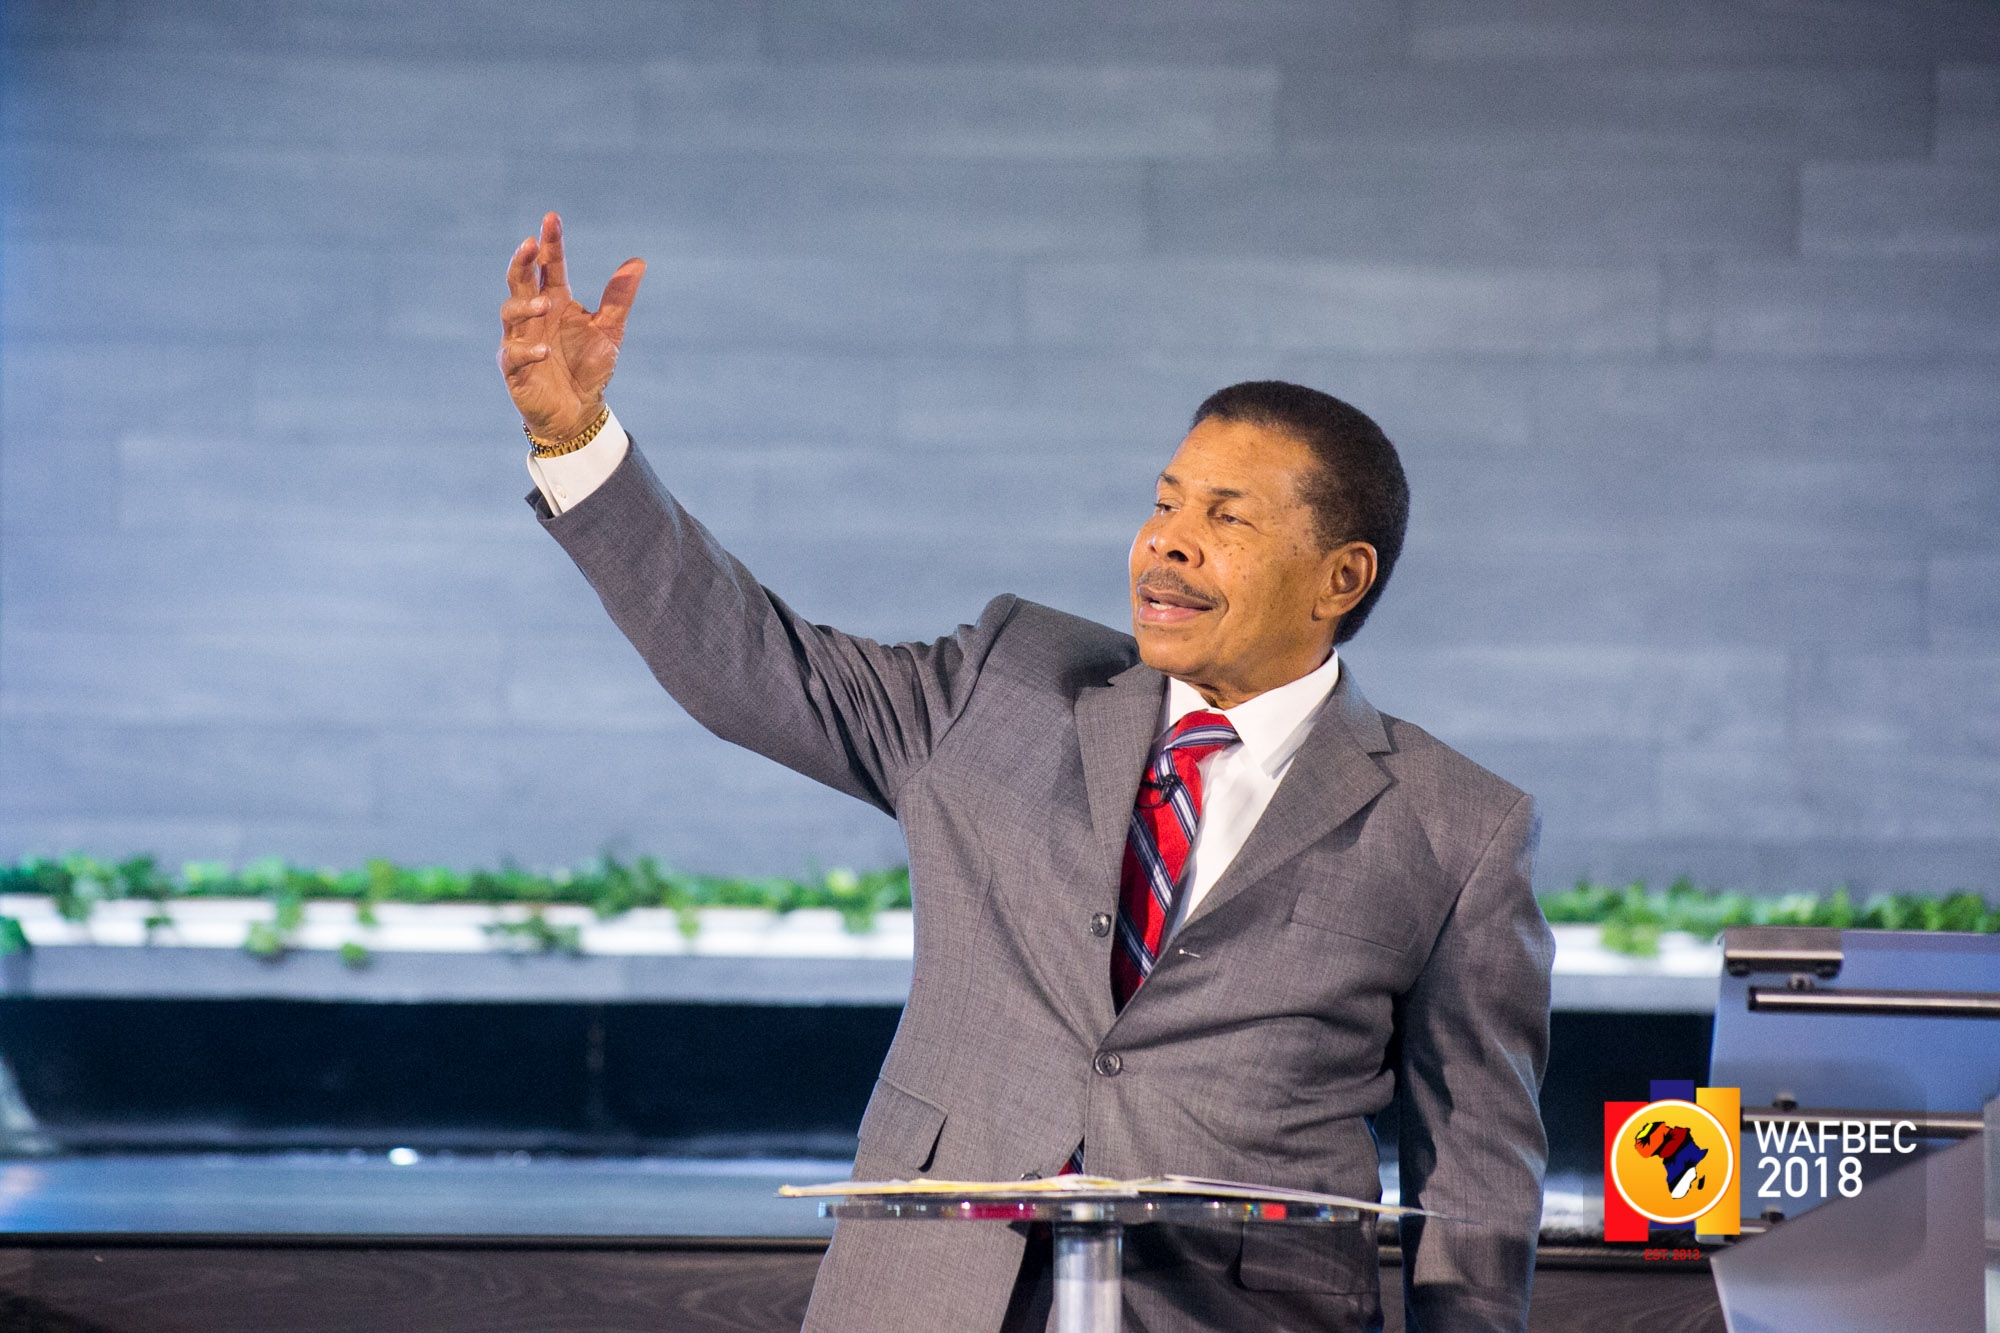 WAFBEC 2018 – Day 7 (Morning Session 2) with Dr Bill Winston